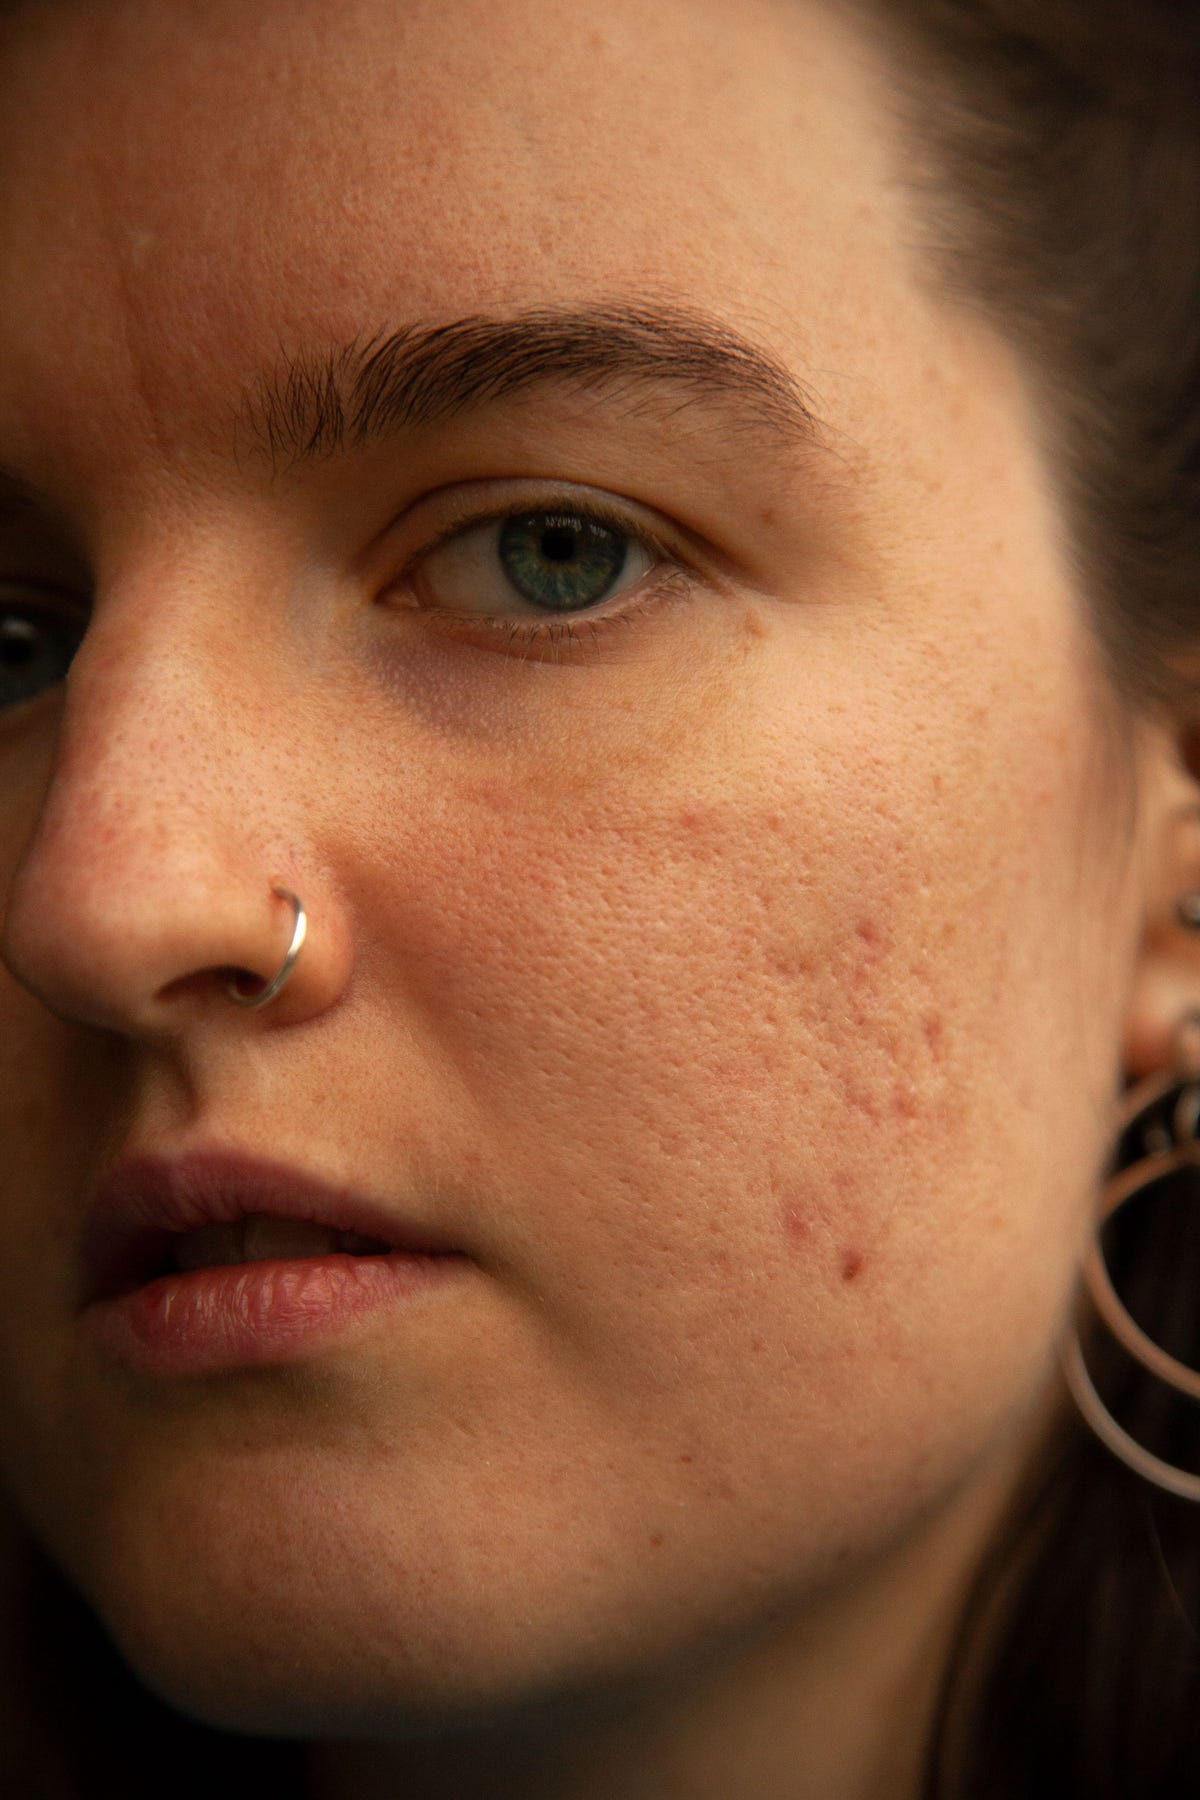 How To Get Rid Of Hormonal Acne - Causes, Treatment